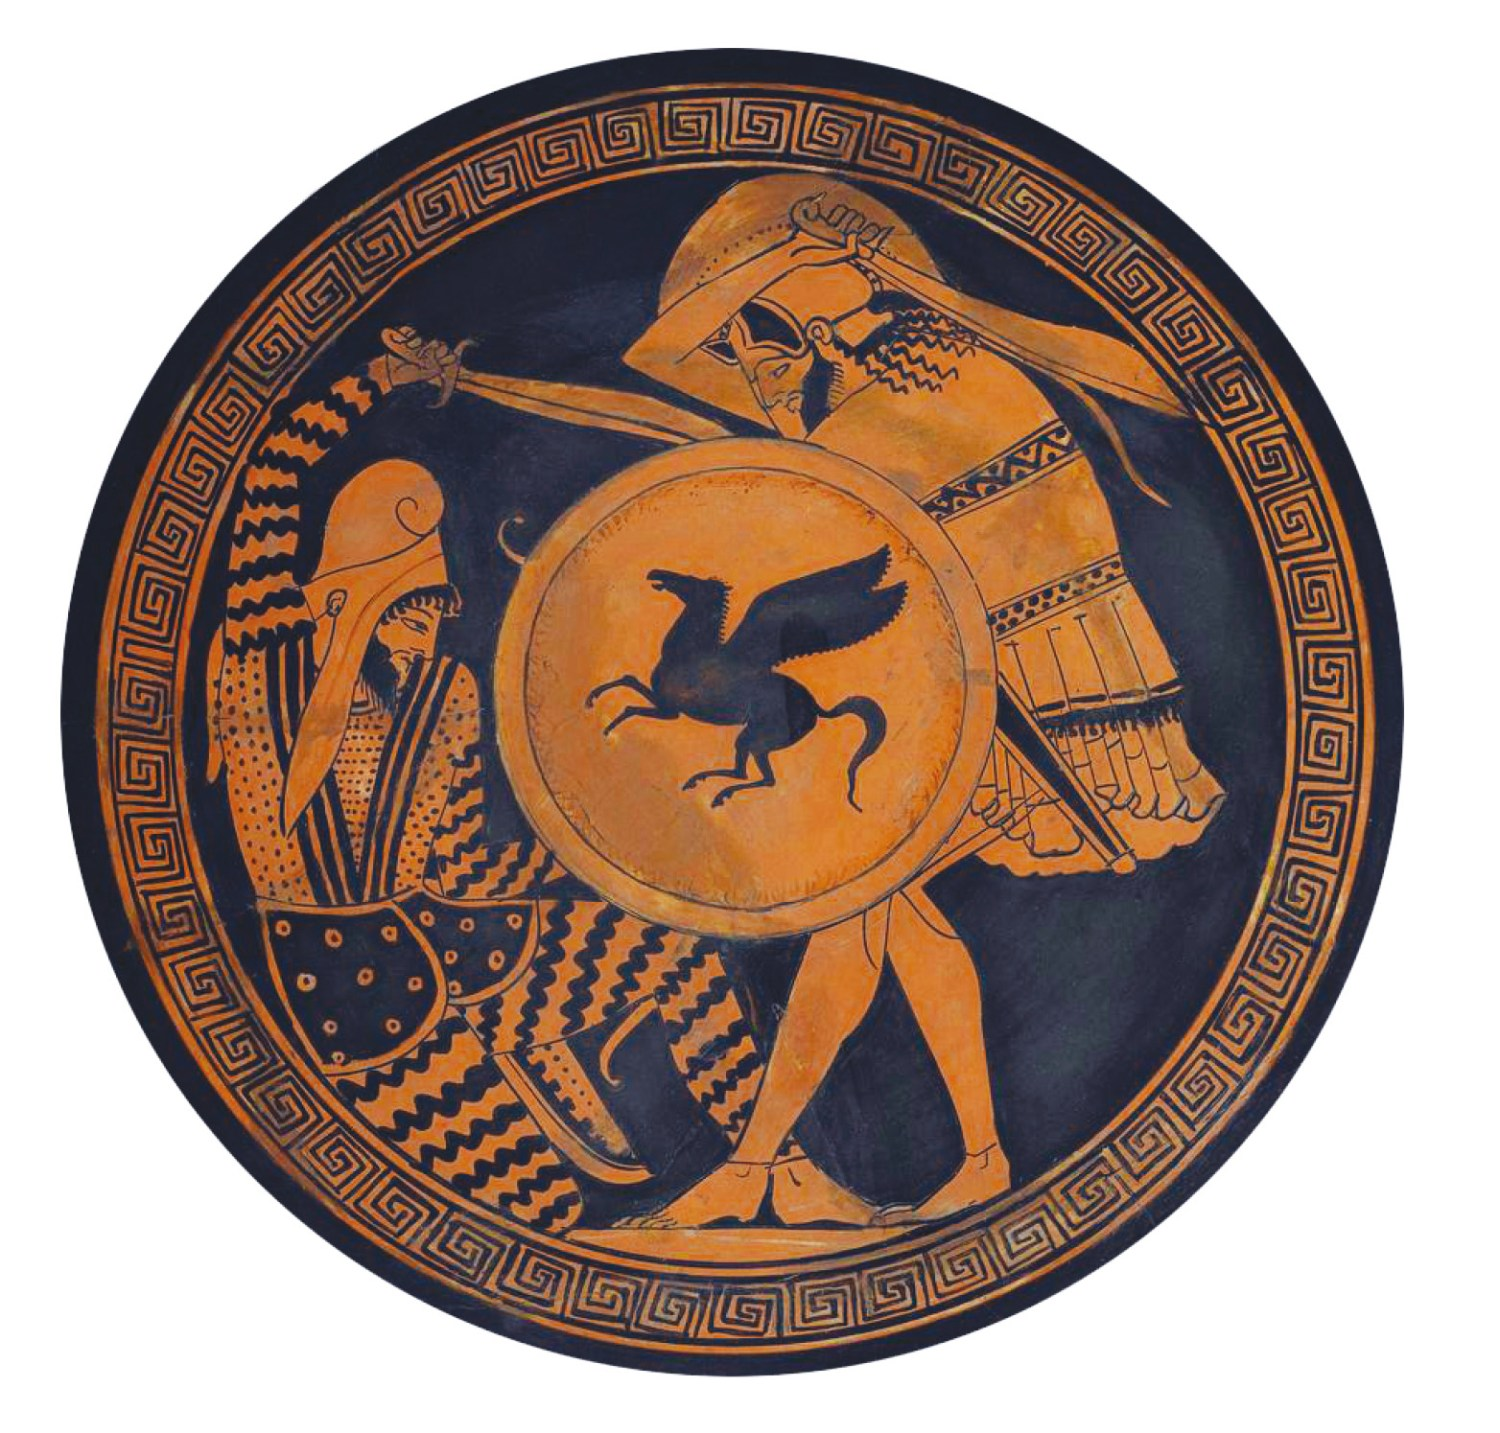 below A Greek hoplite and a Persian warrior depicted in hand-to-hand combat on a red-figure vase painting.